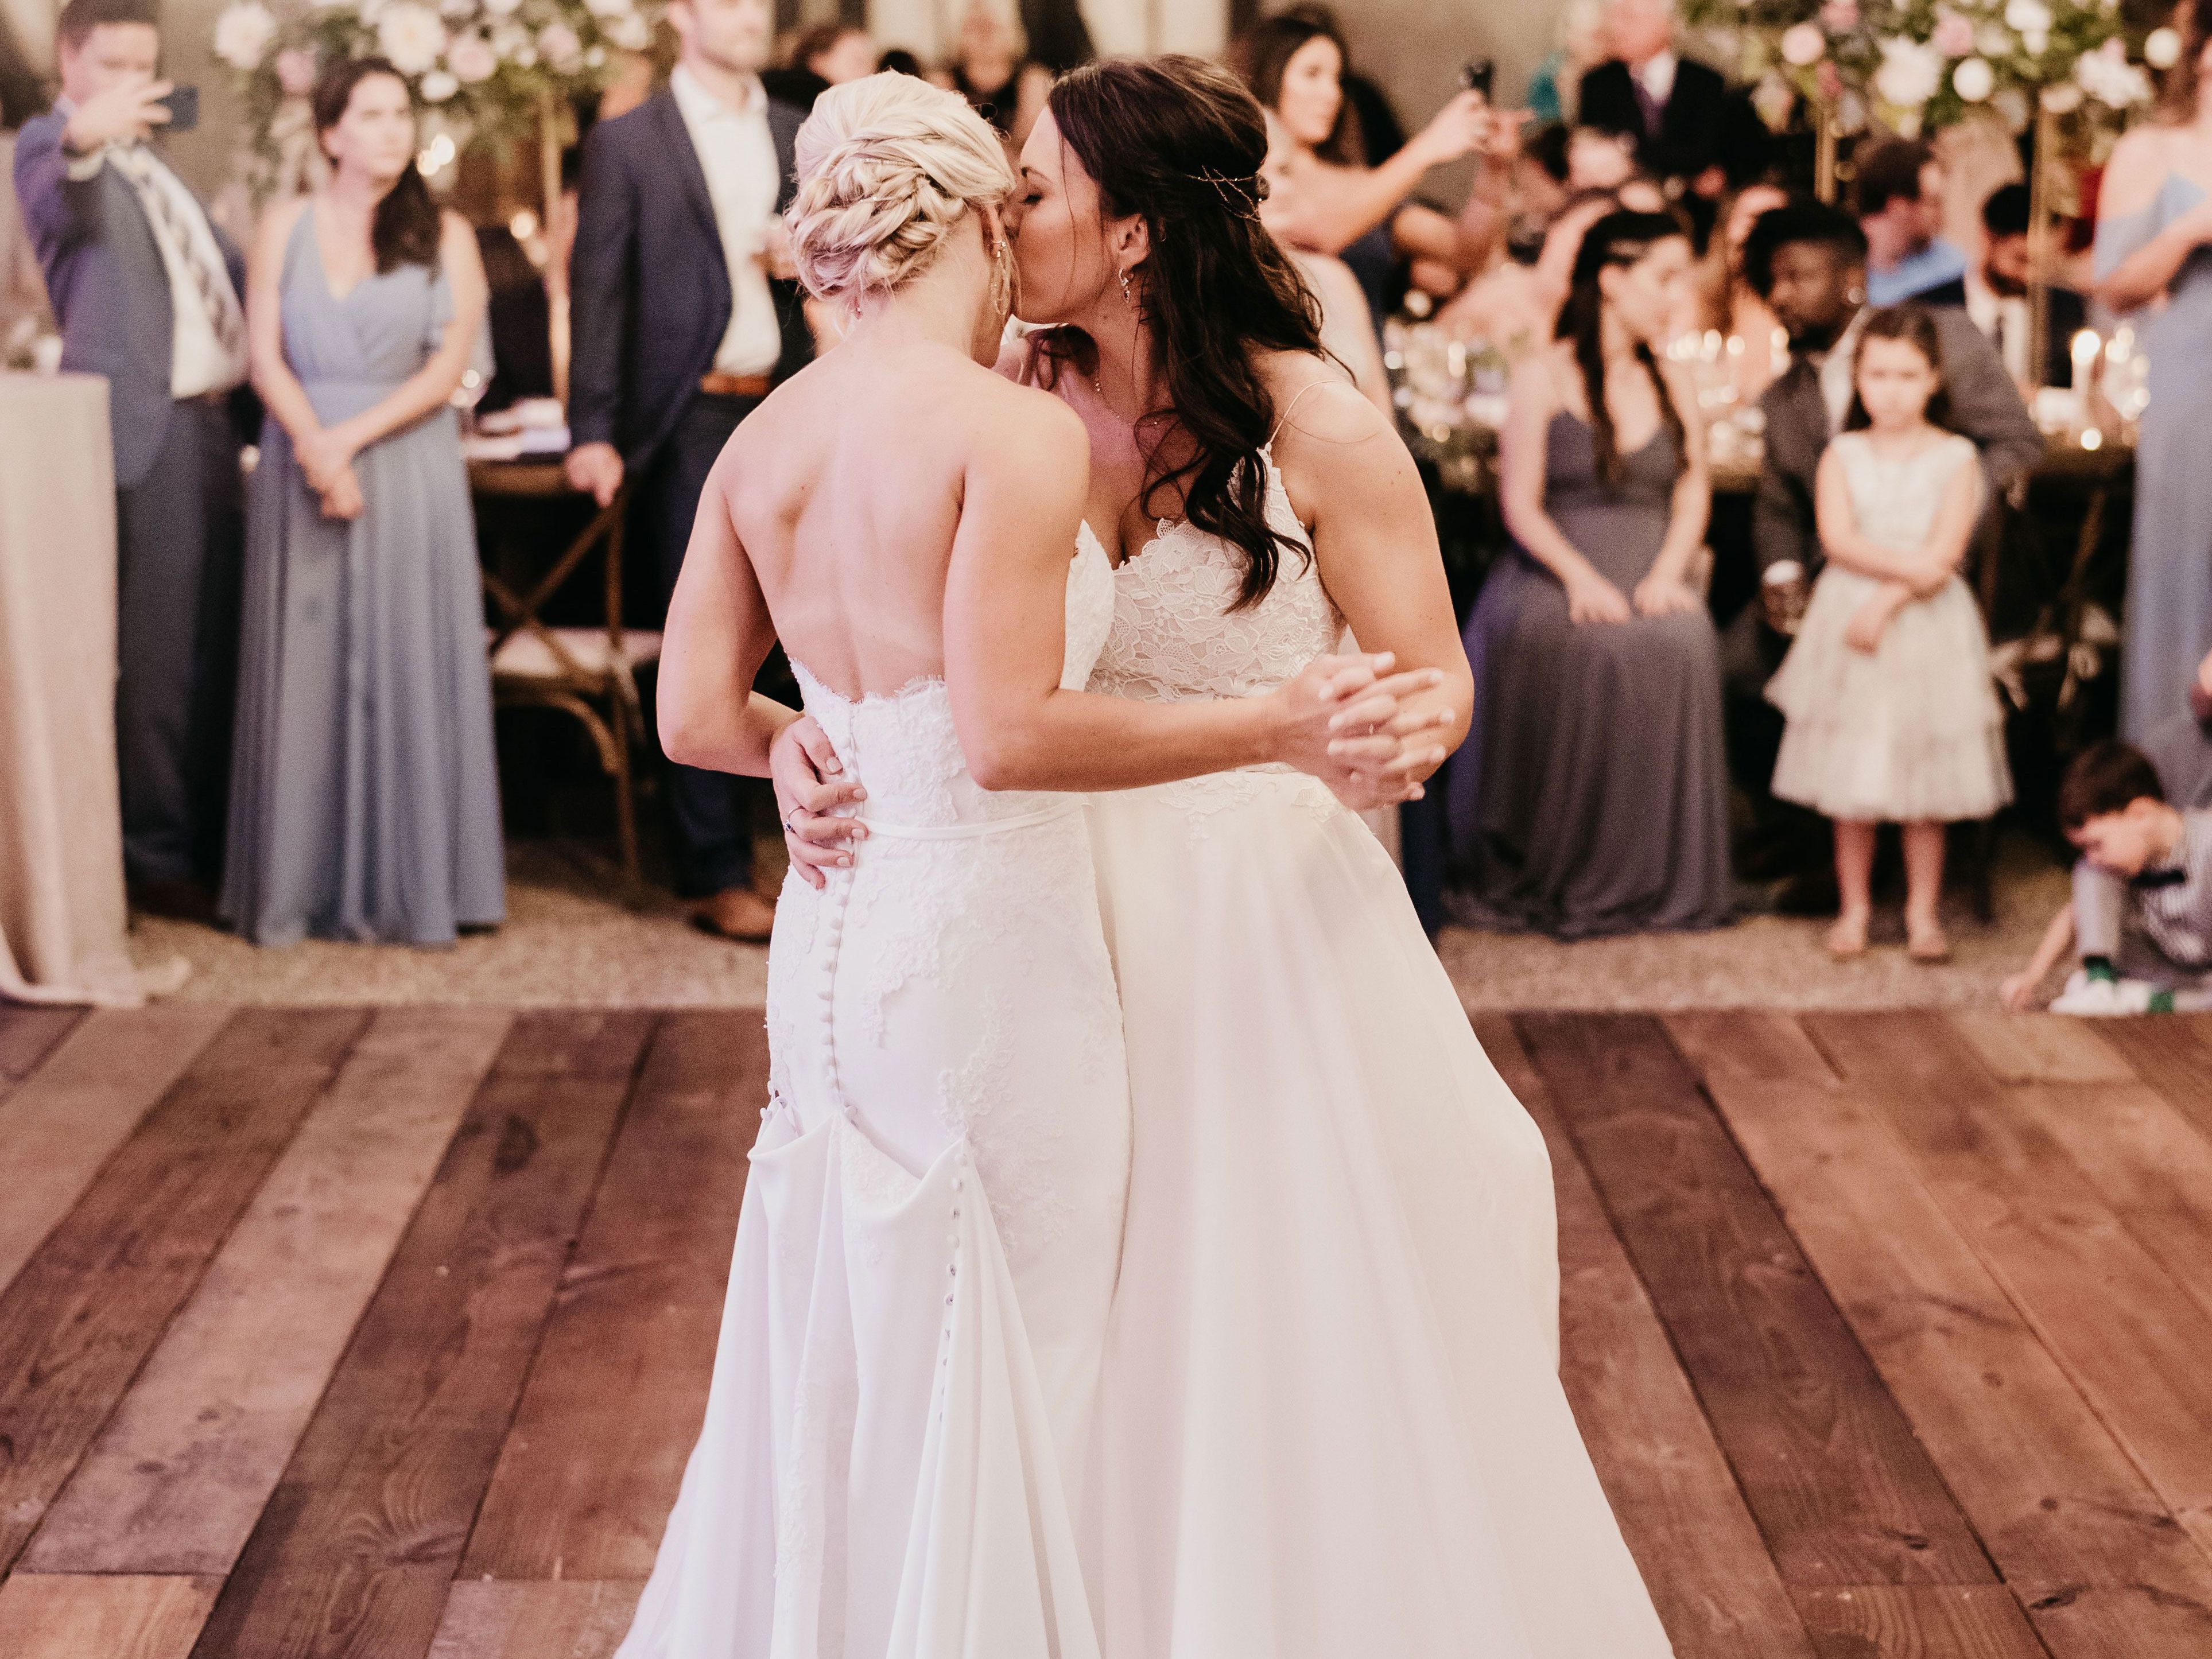 How To Plan Your Wedding Dances According To An Expert